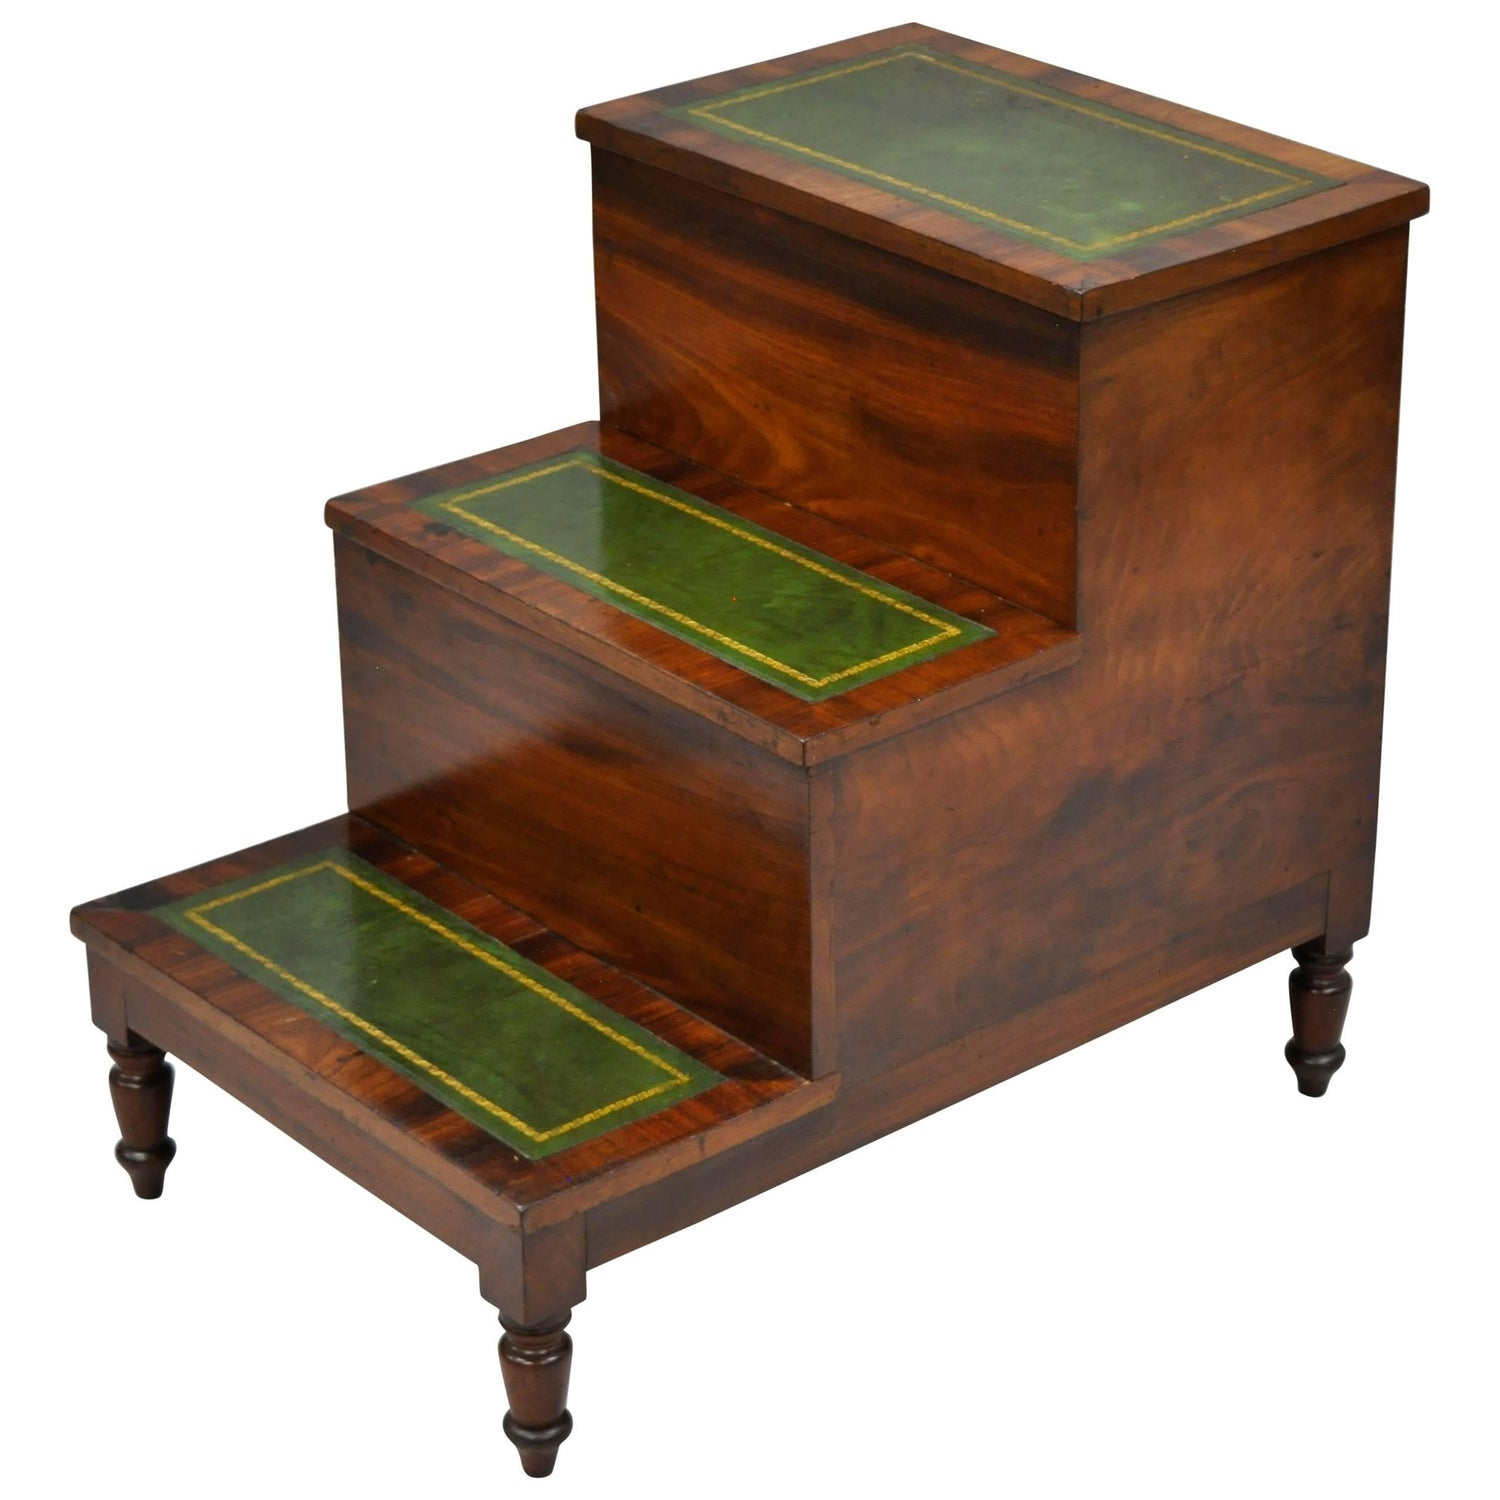 Antique English Regency Bed Step Table Flip Top Green Leather Crotch Mahogany